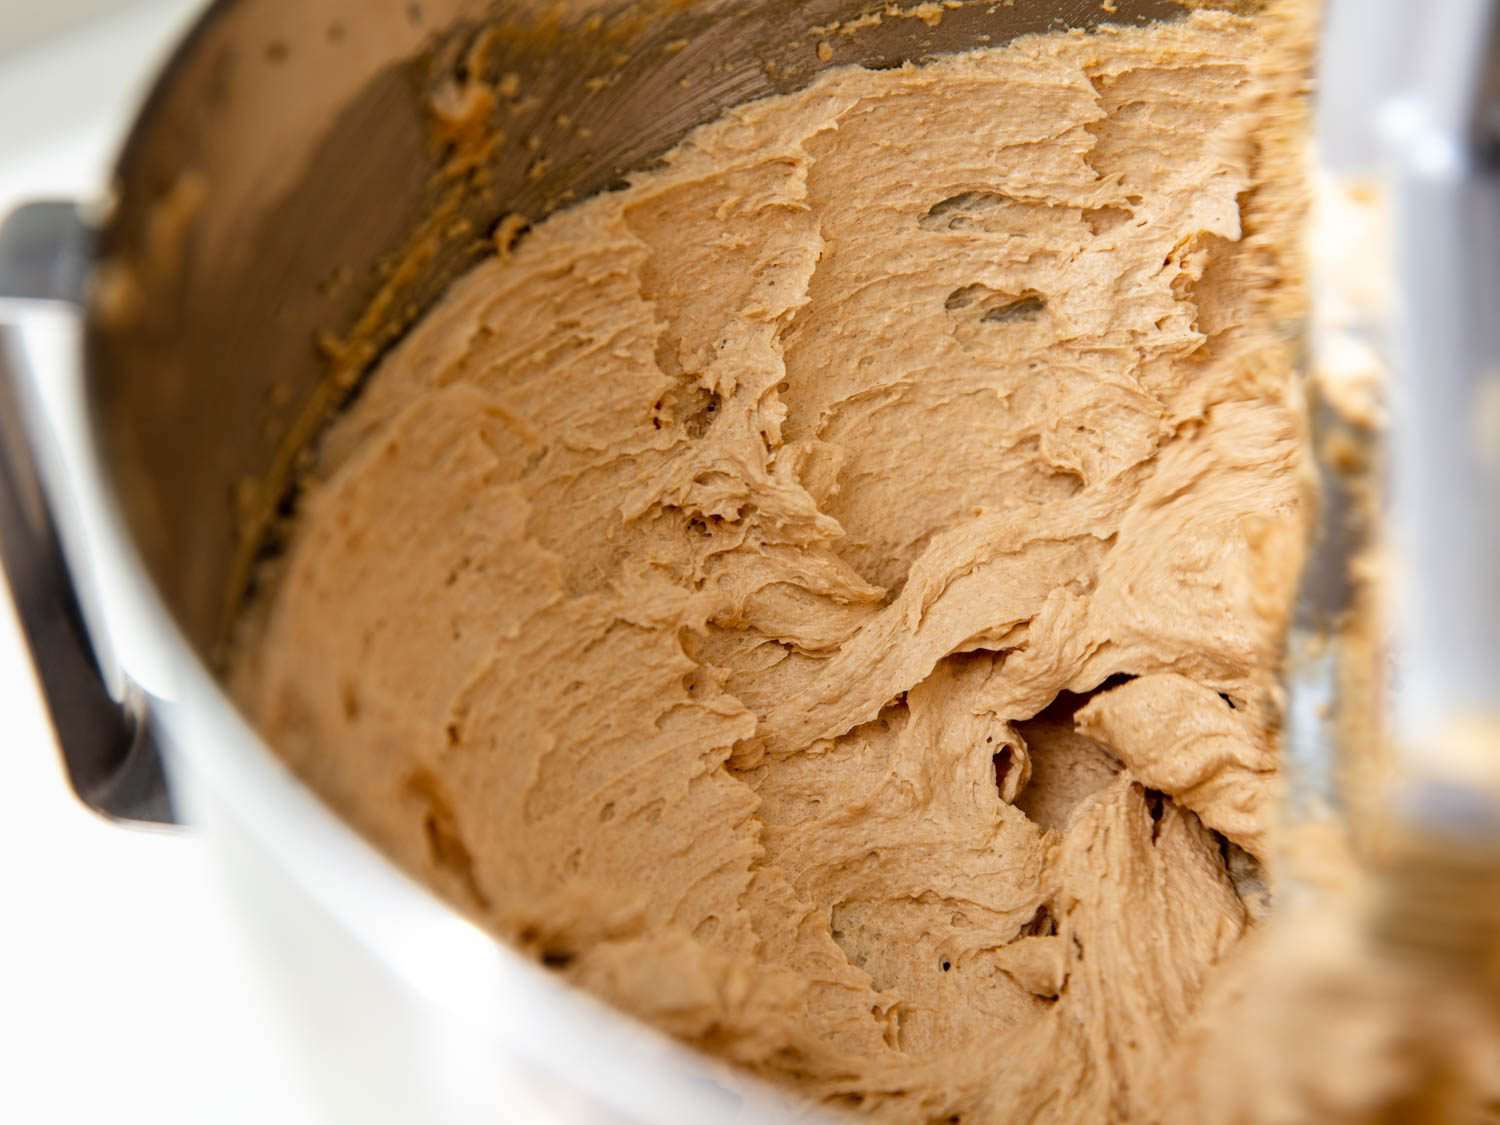 the butter-sugar mixture for lactation cookies after creaming: smooth, light, fluffy, and voluminous